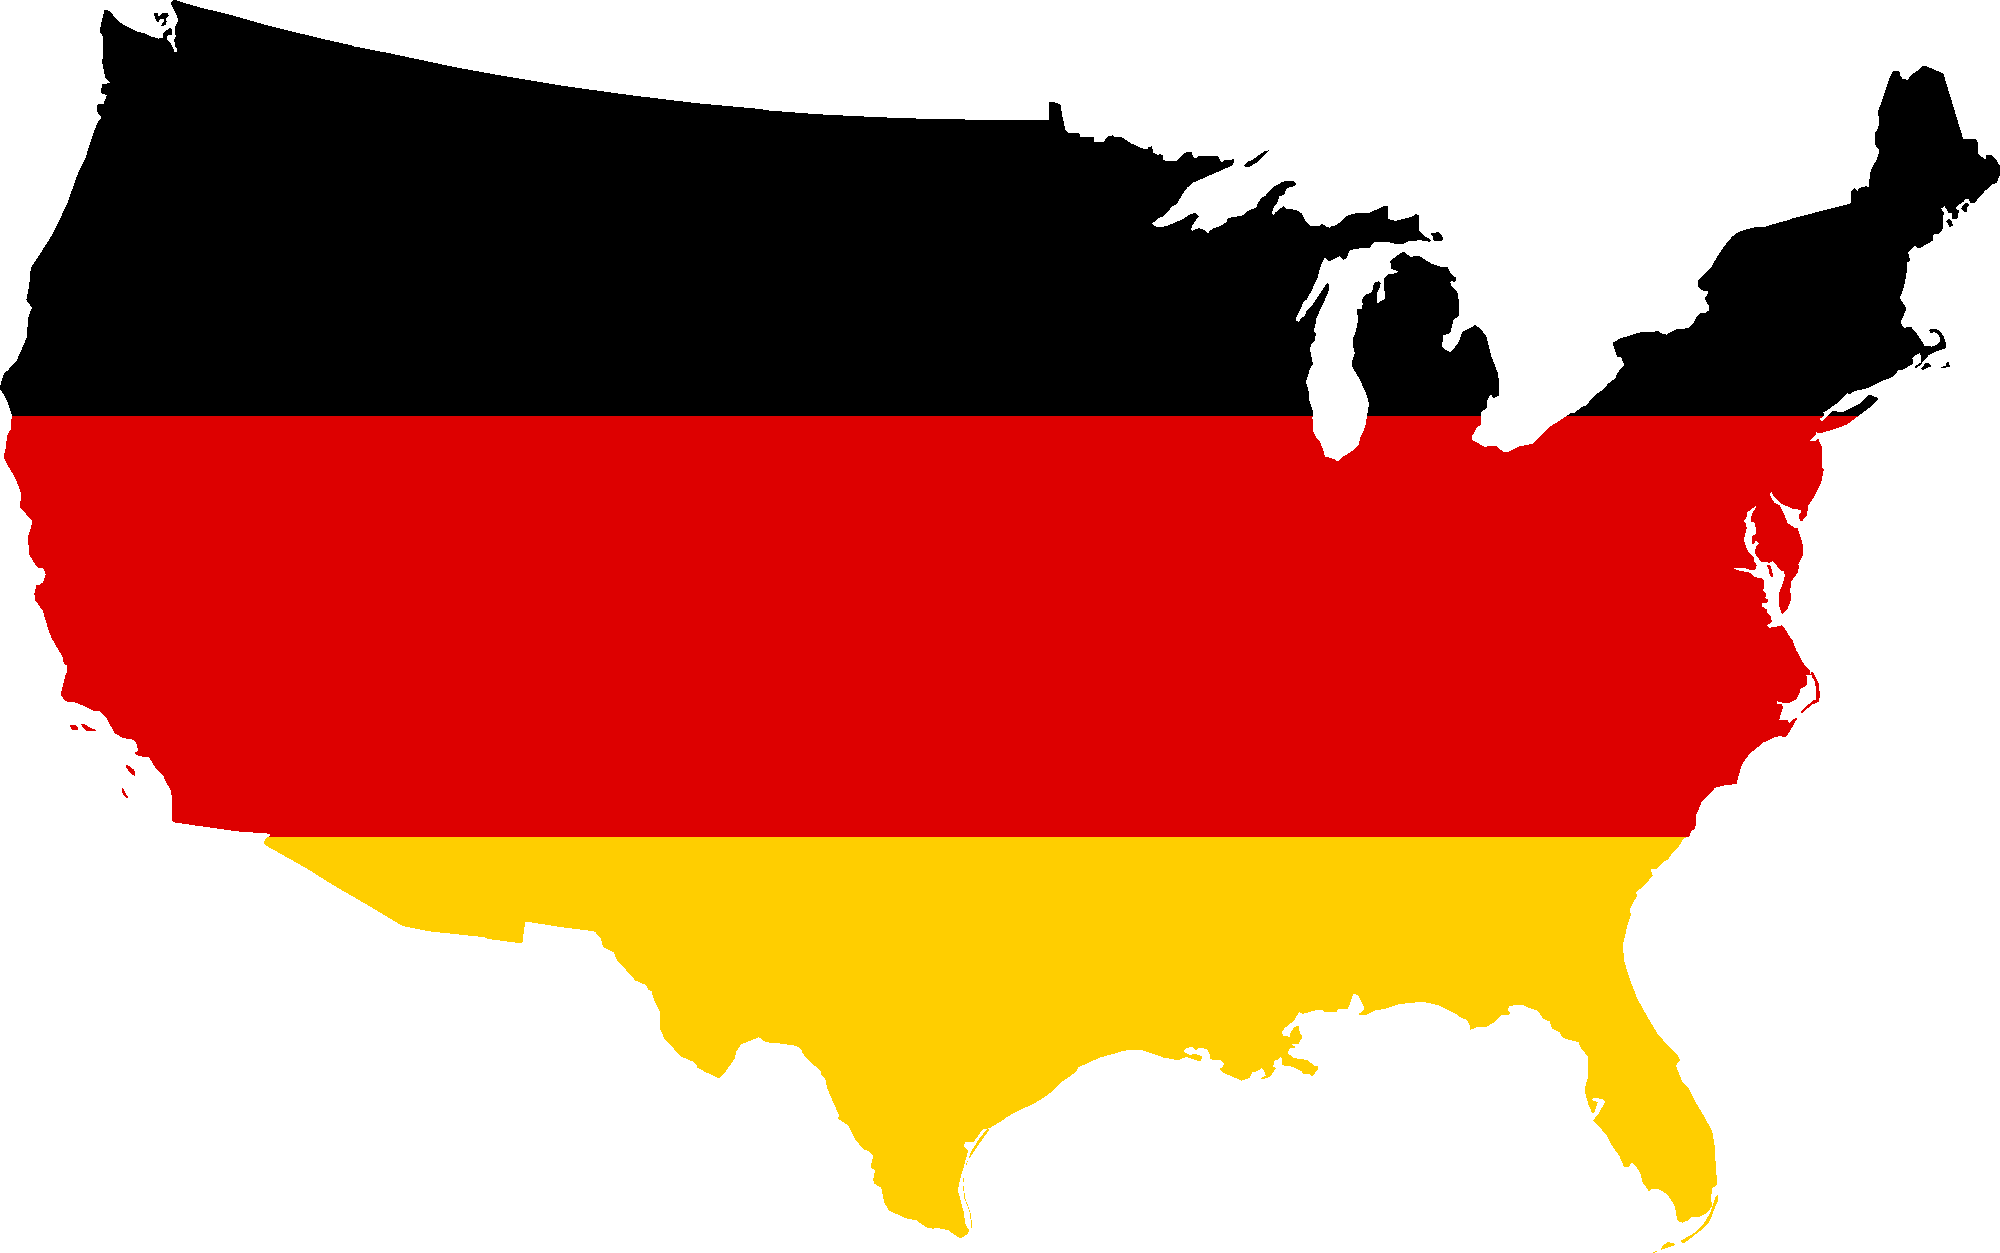 Us map flag clipart transparent Germany Map Flag - ClipArt Best transparent